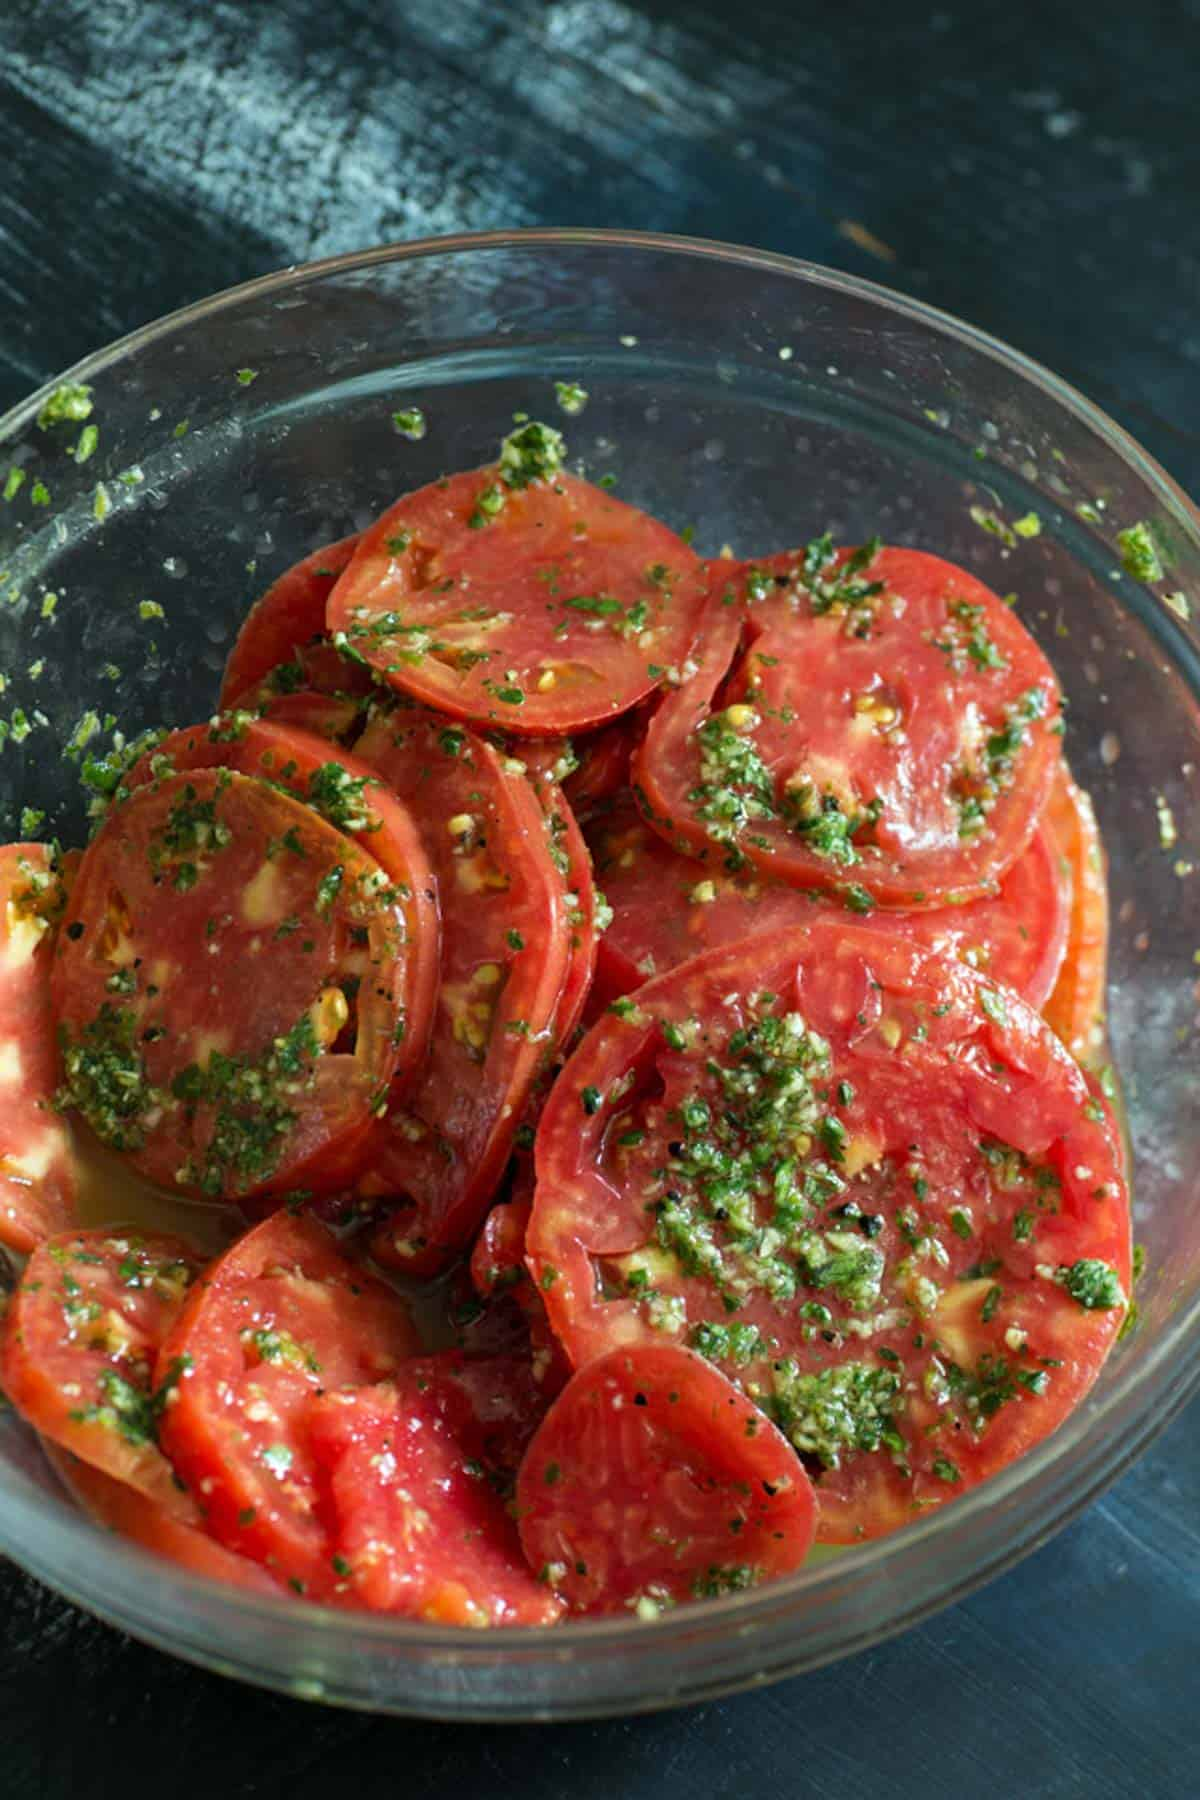 A bowl of sliced tomatoes